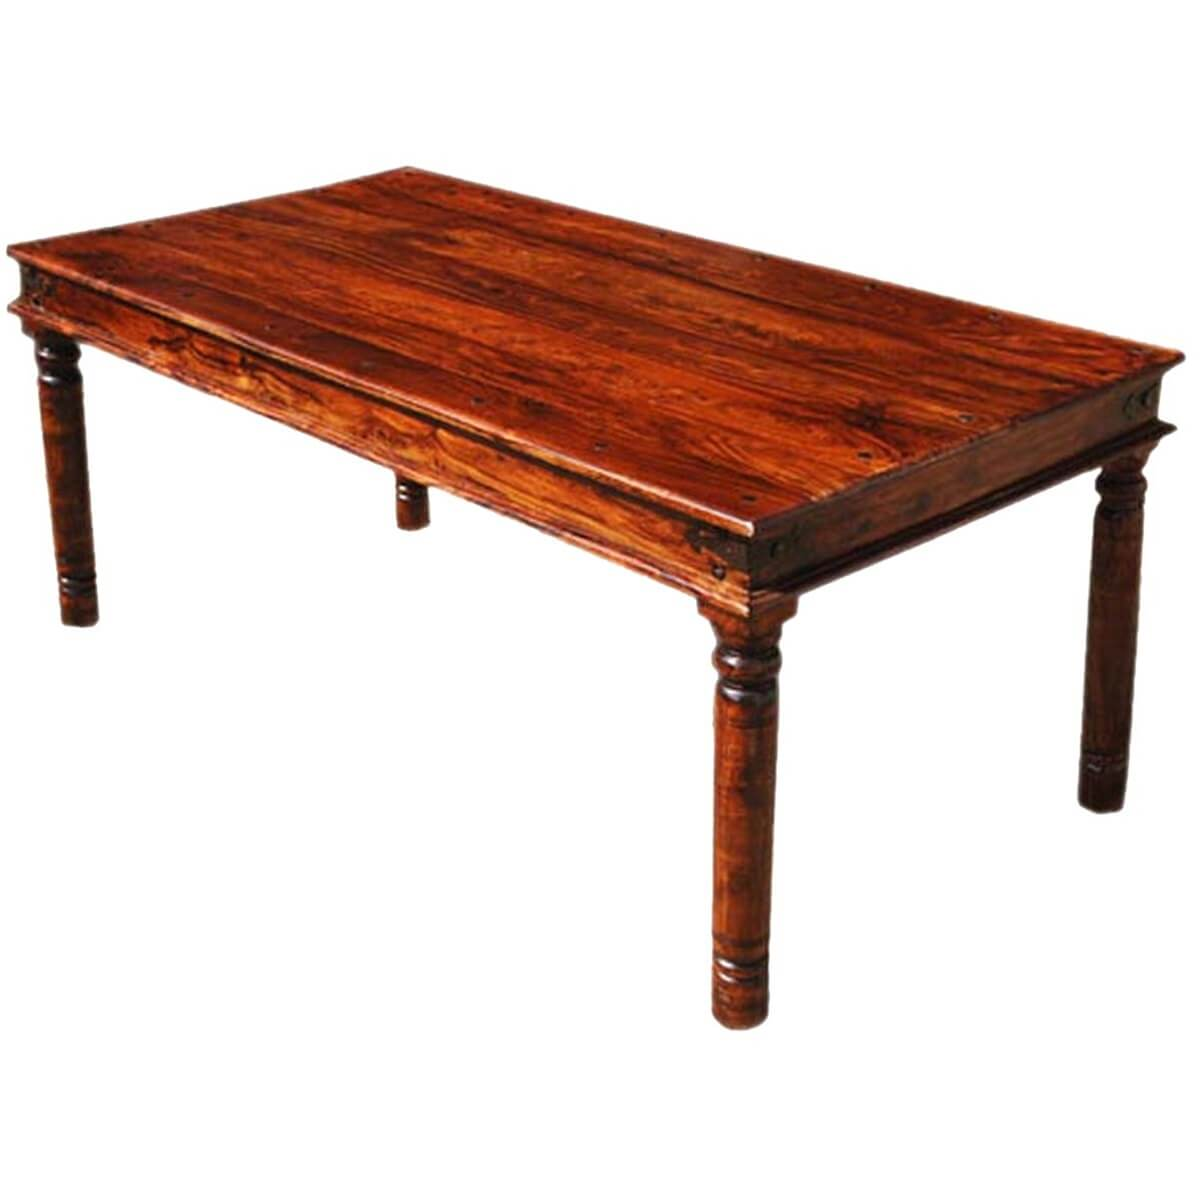 8 Person Square Dining Table: Grogan Rustic Solid Wood Rectangular Dining Table For 8 People